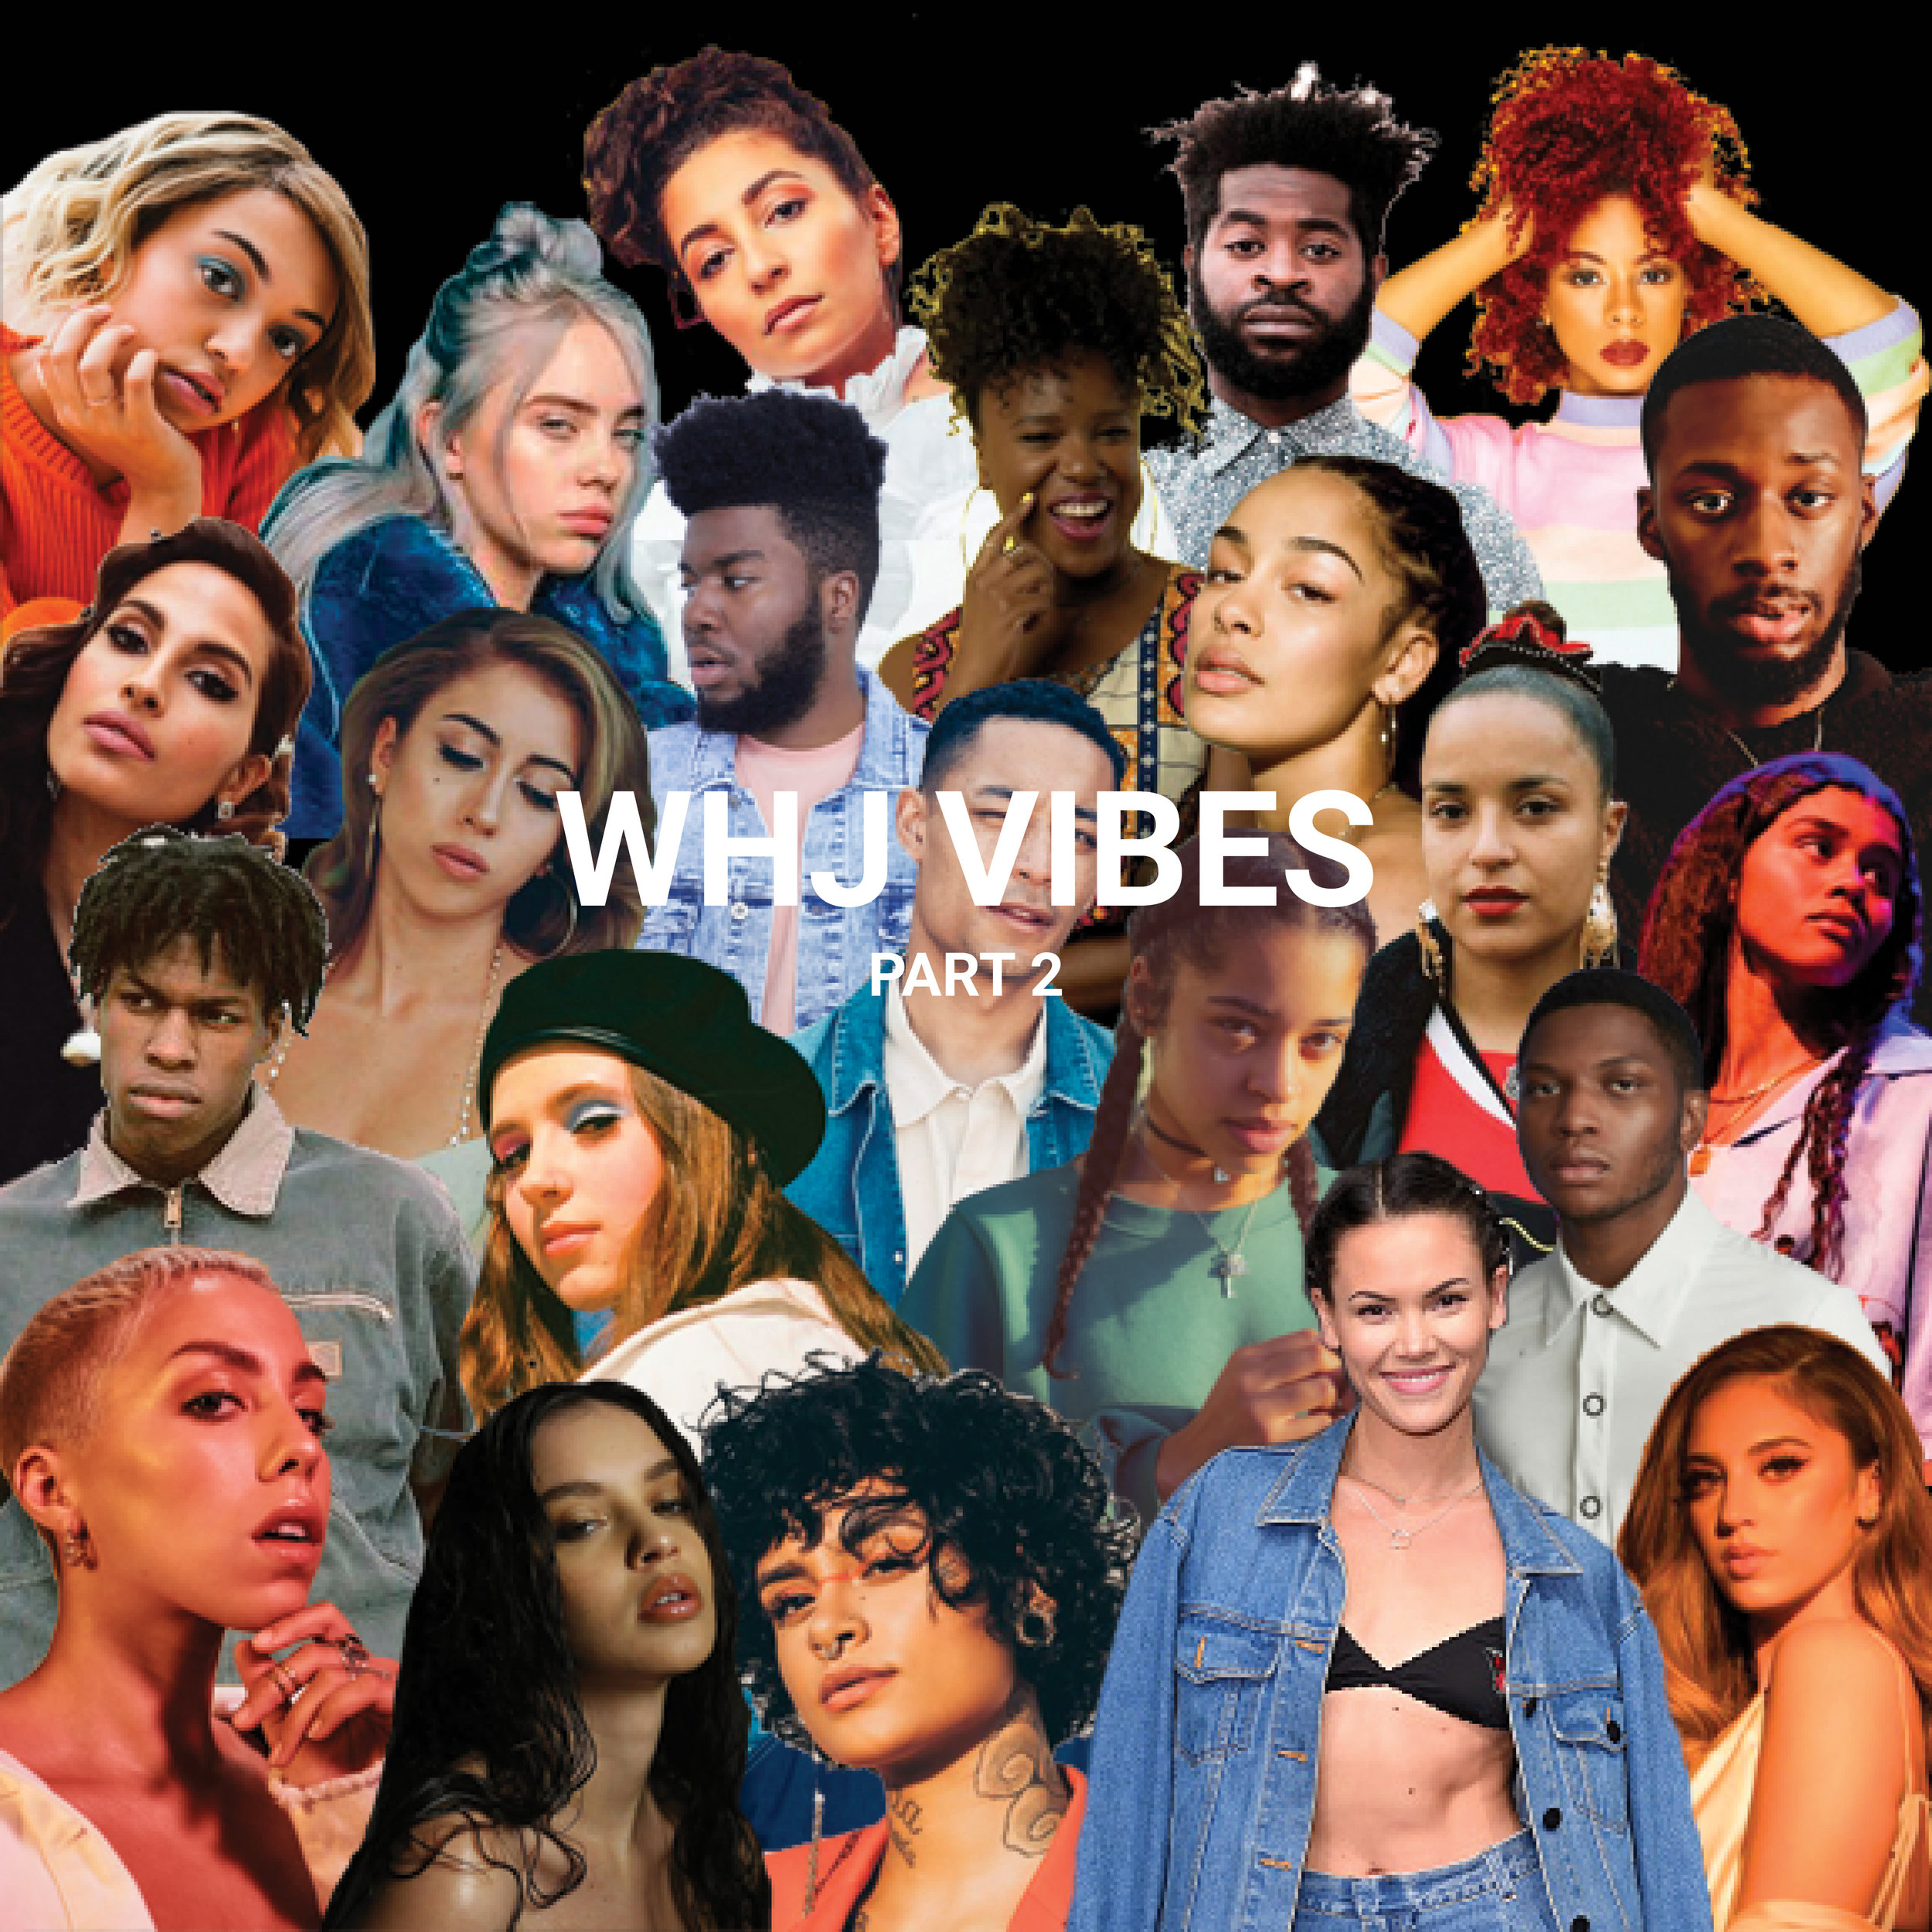 Get back into the swing of things with a new vibe! Another amazing curated playlist by Tiana Thomson. Follow WHJ27 Vibes pt. 2 through on Spotify now. Featuring all our current faves, including Sabrina Claudio, Ama Lou, Mahalia and more.